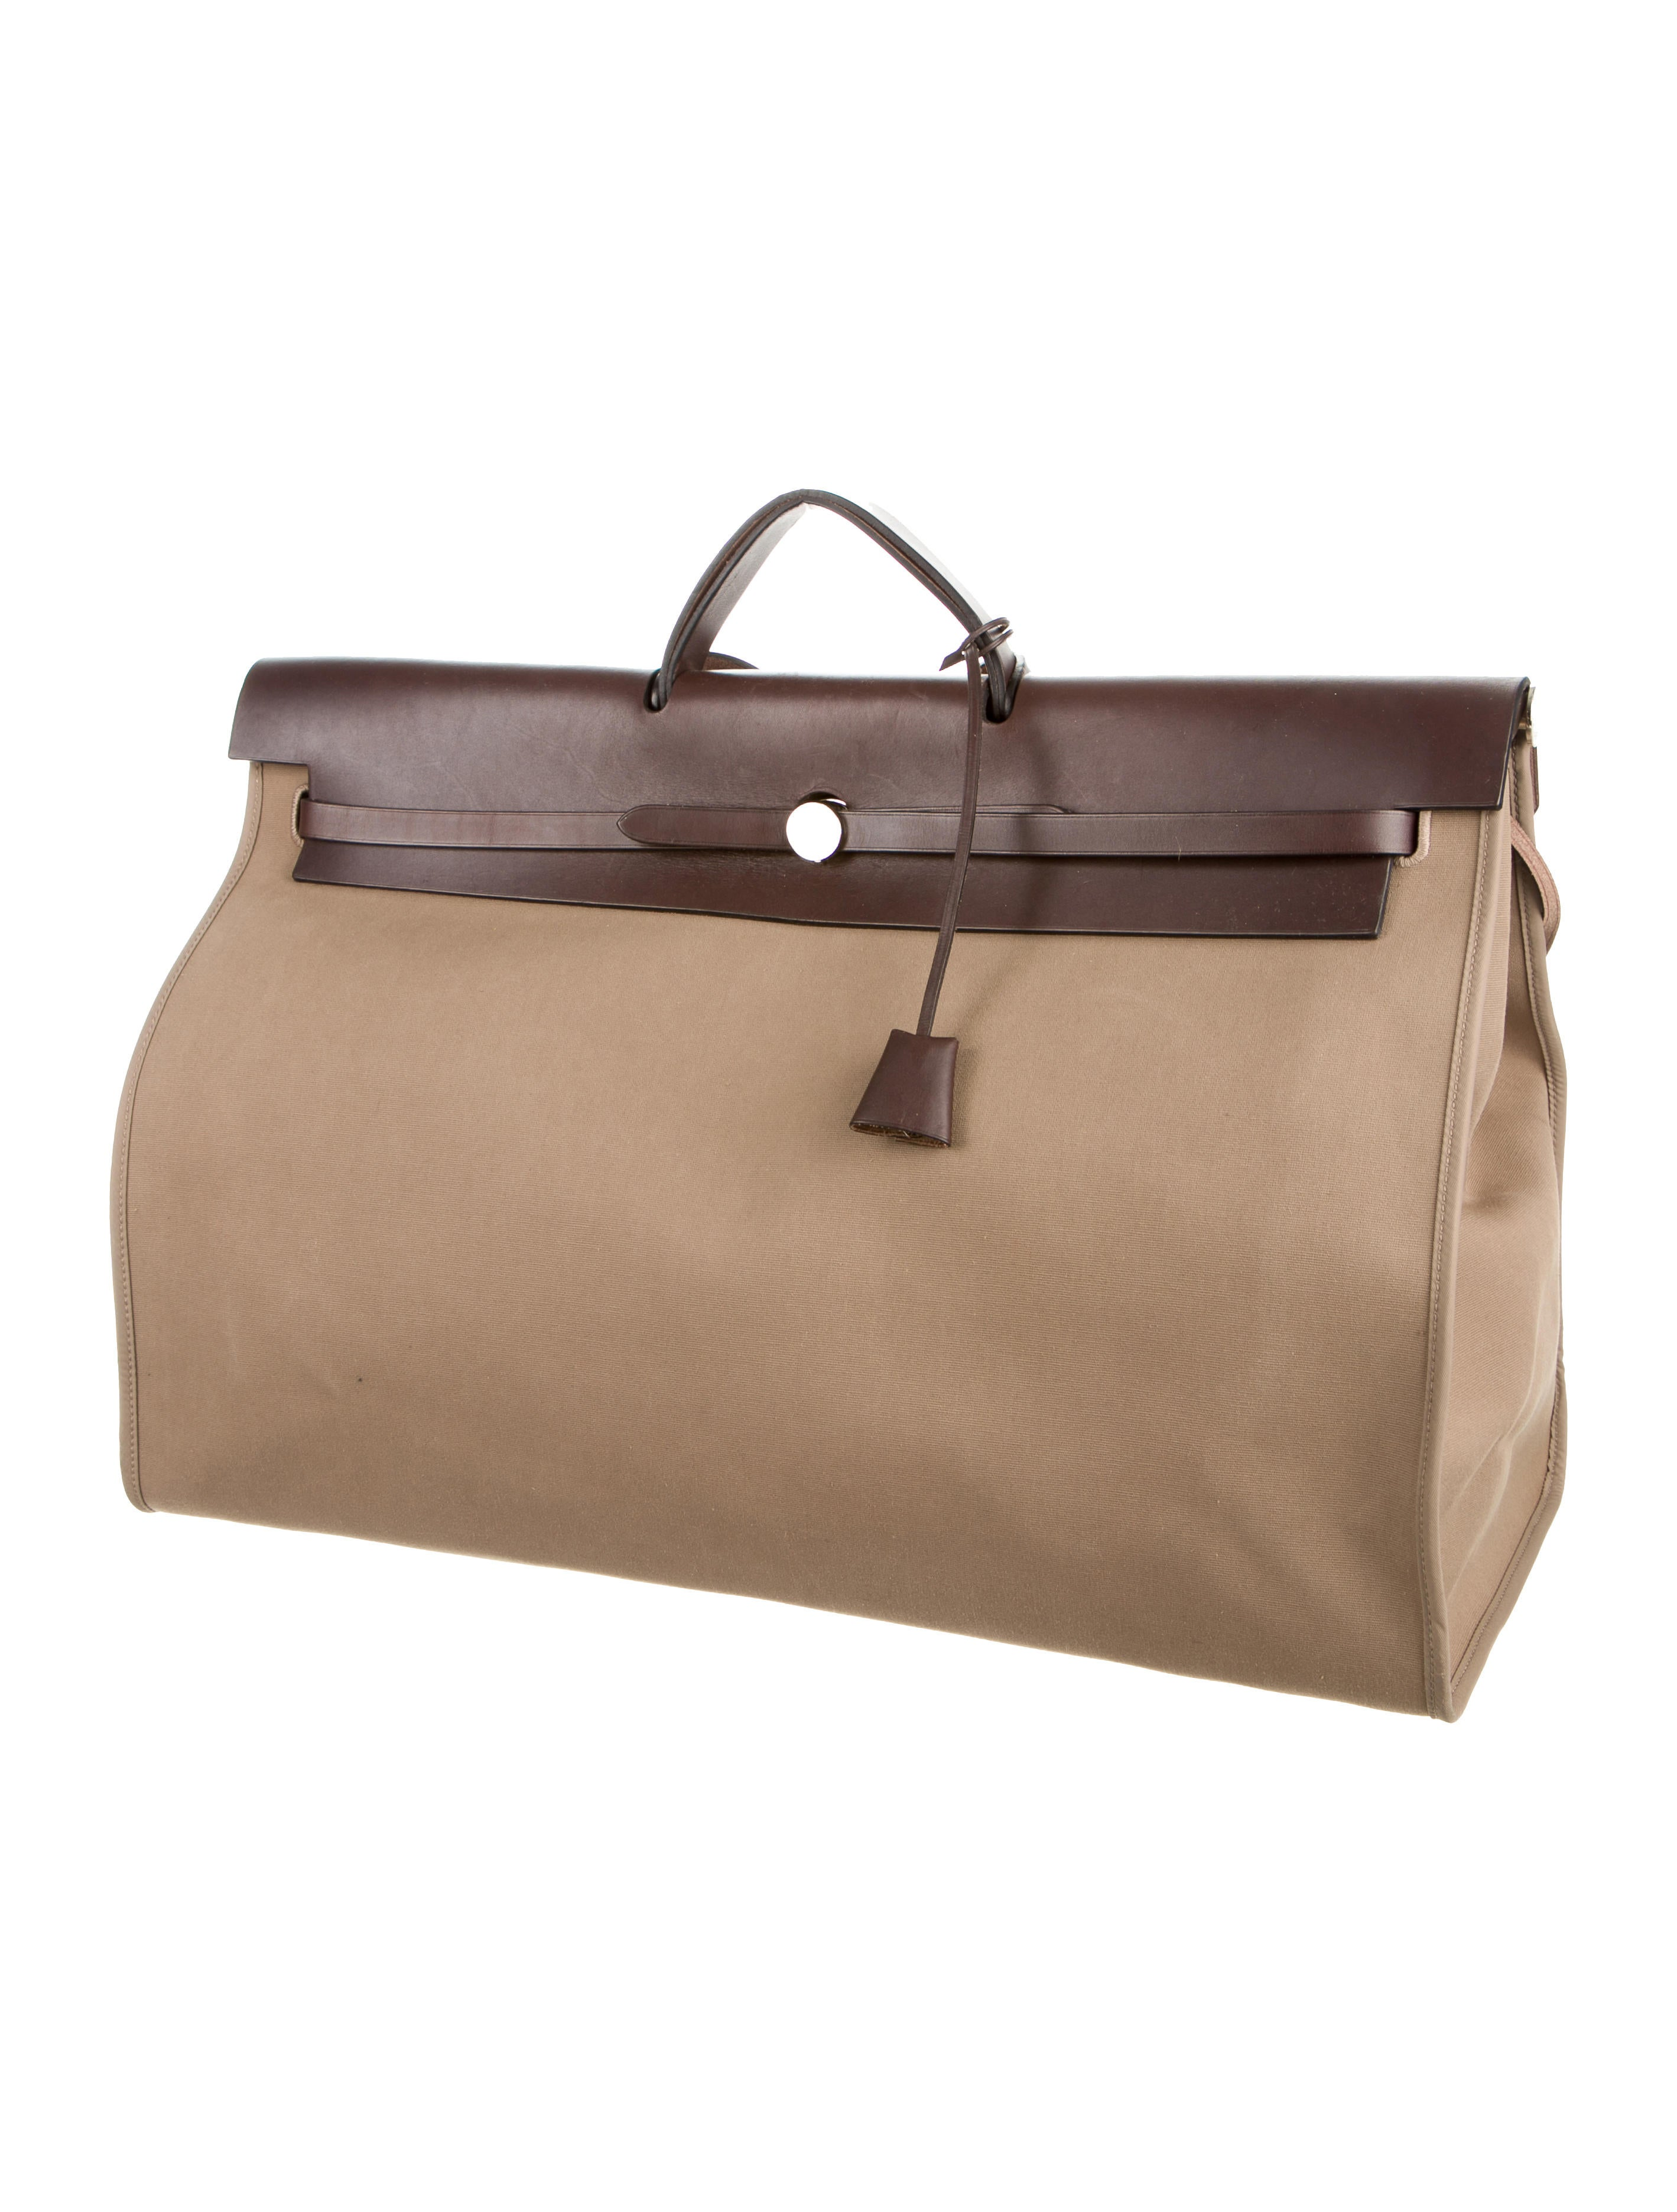 a630cb1a6d6 ... italy hermès herbag zip gm bags her79788 the realreal 49286 8c4cb